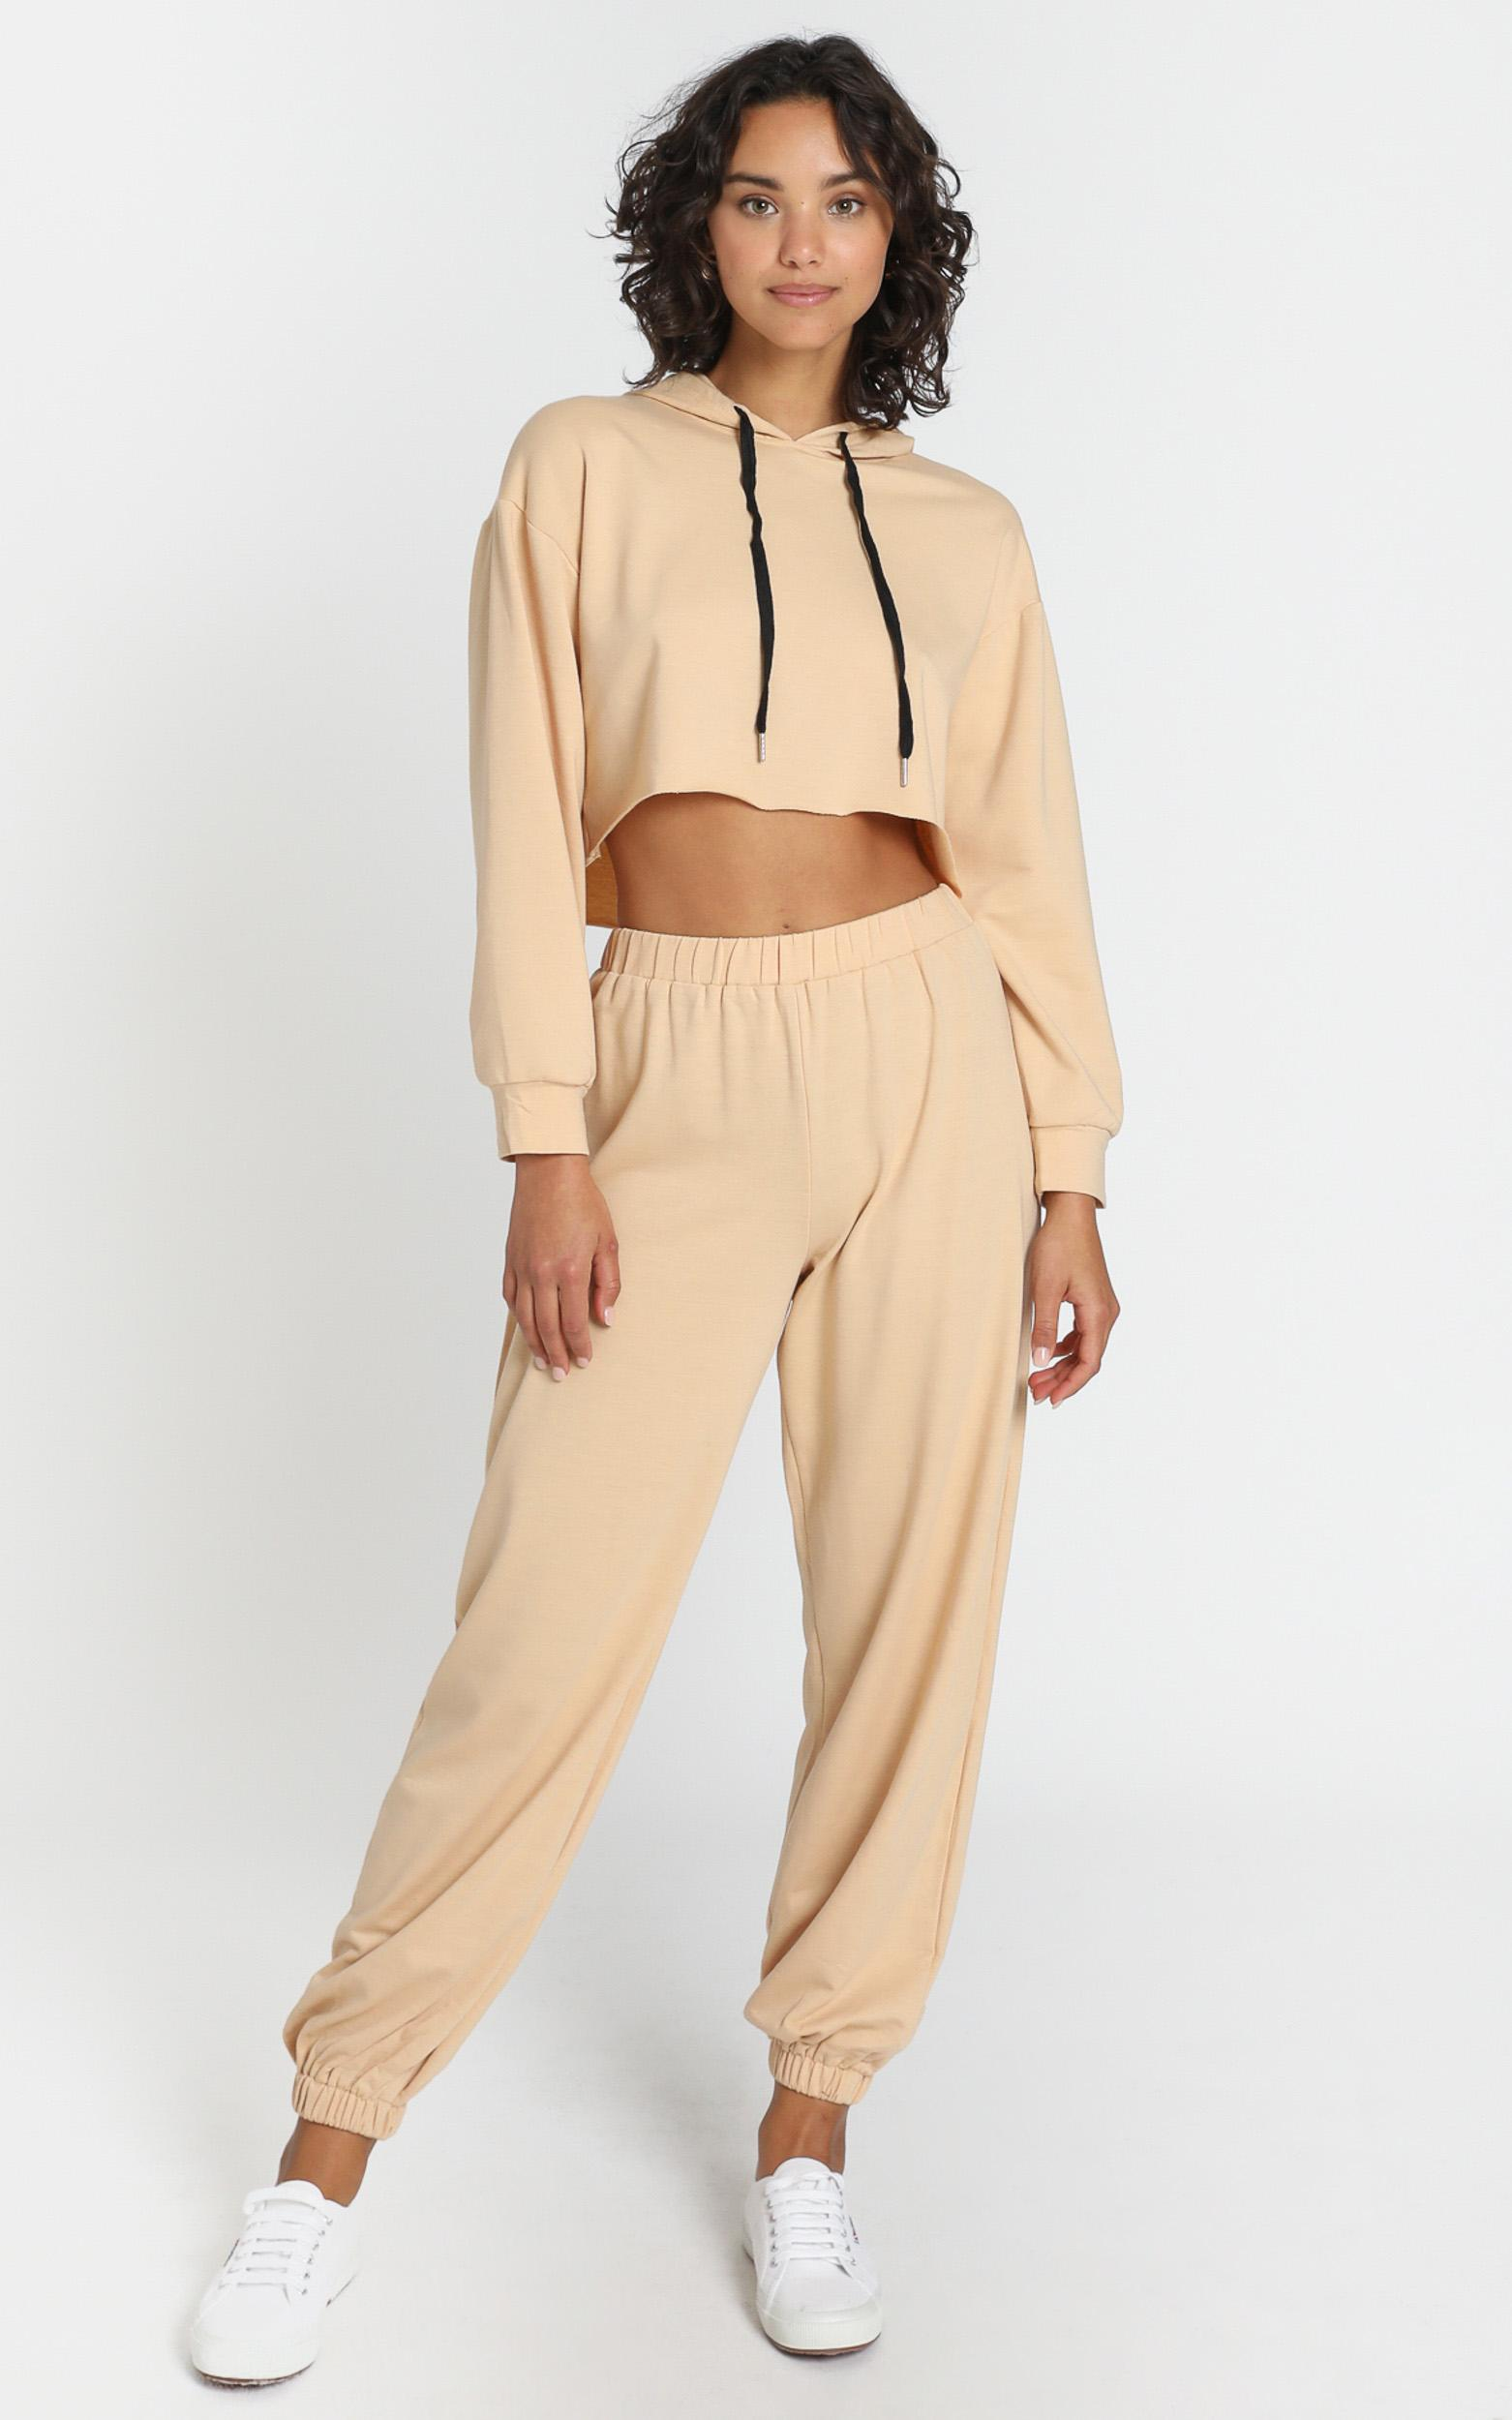 Clovelly Two Piece Set in Beige - 6 (XS), Beige, hi-res image number null